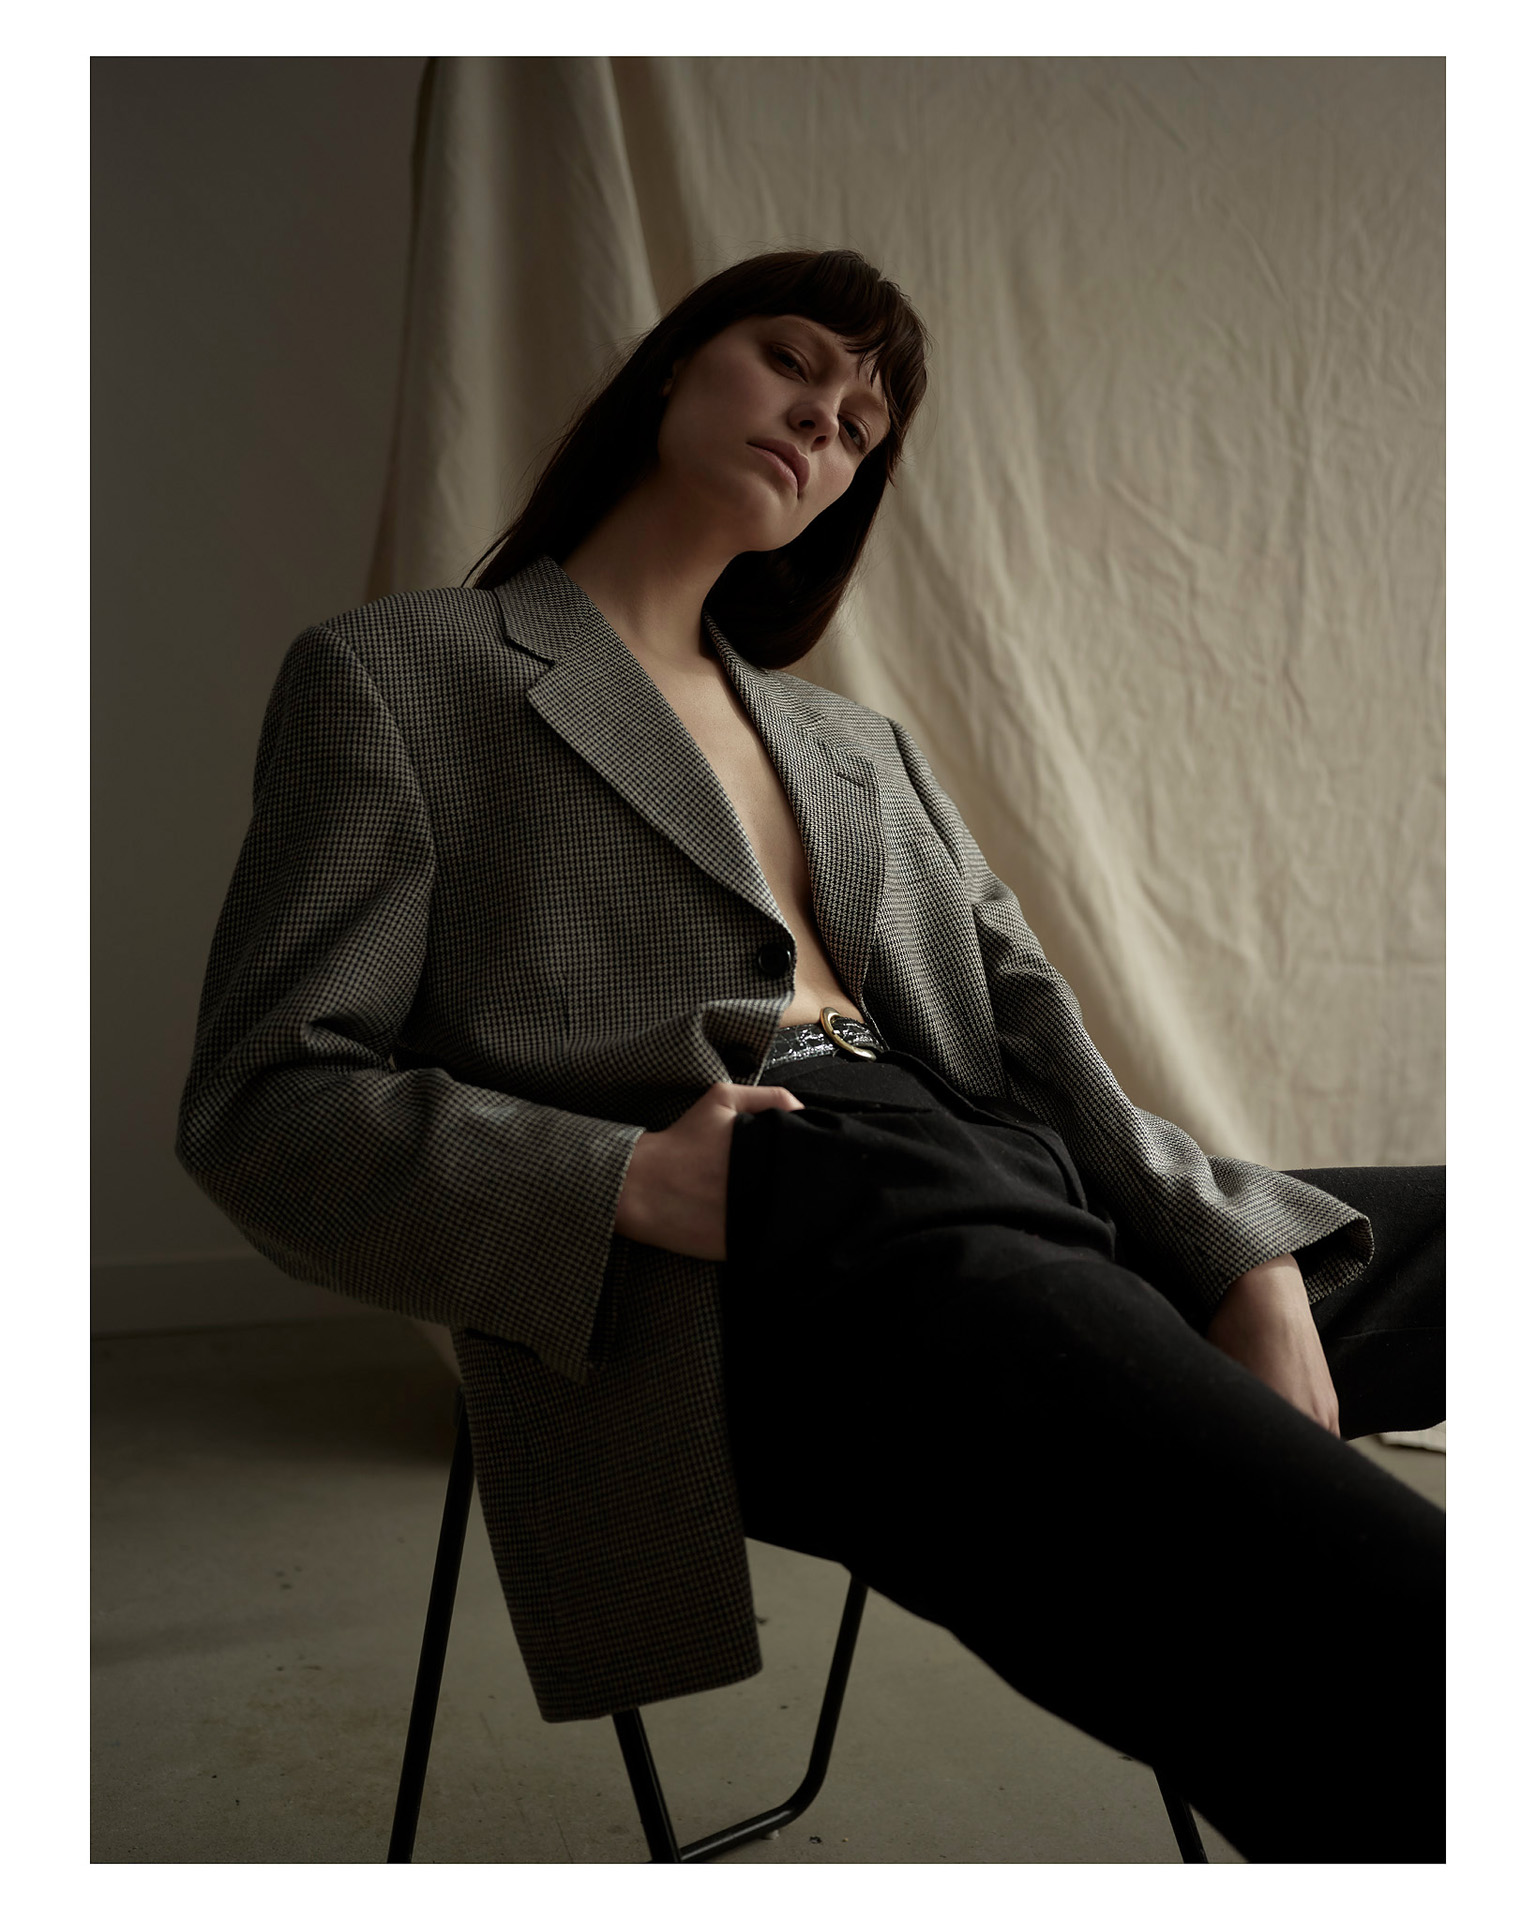 woman sitting on chair wearing black suit pants and checkered oversized suit jacket hand in her pocket leaning back looking at camera by Maxyme G Delisle for Mariane